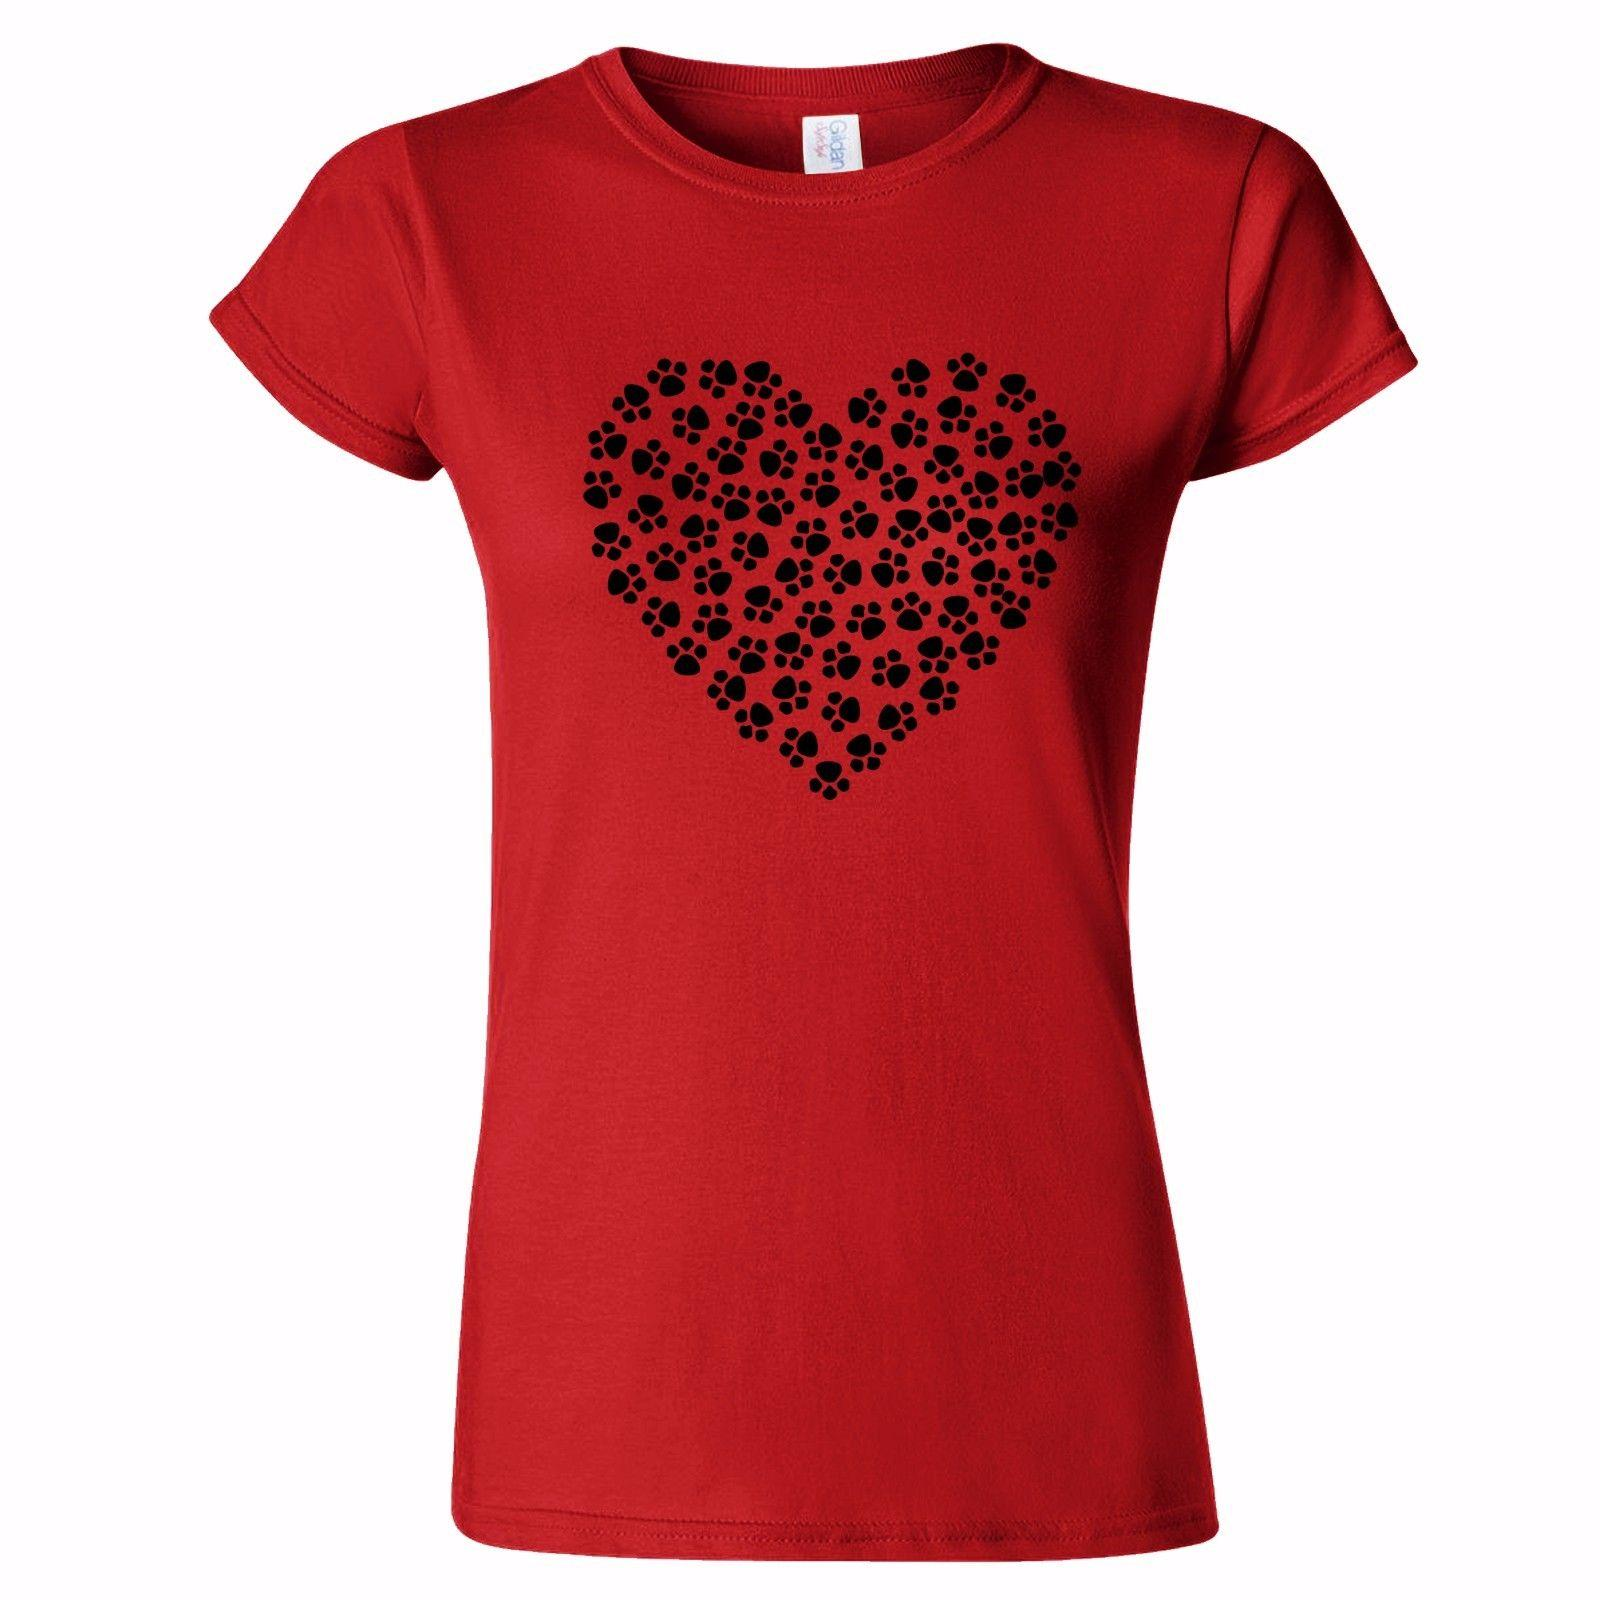 HEART FROM PAW PRINTS ART WOMENS T SHIRT CAT DOG PET ANIMAL LOVER LOVE CATS DOGS